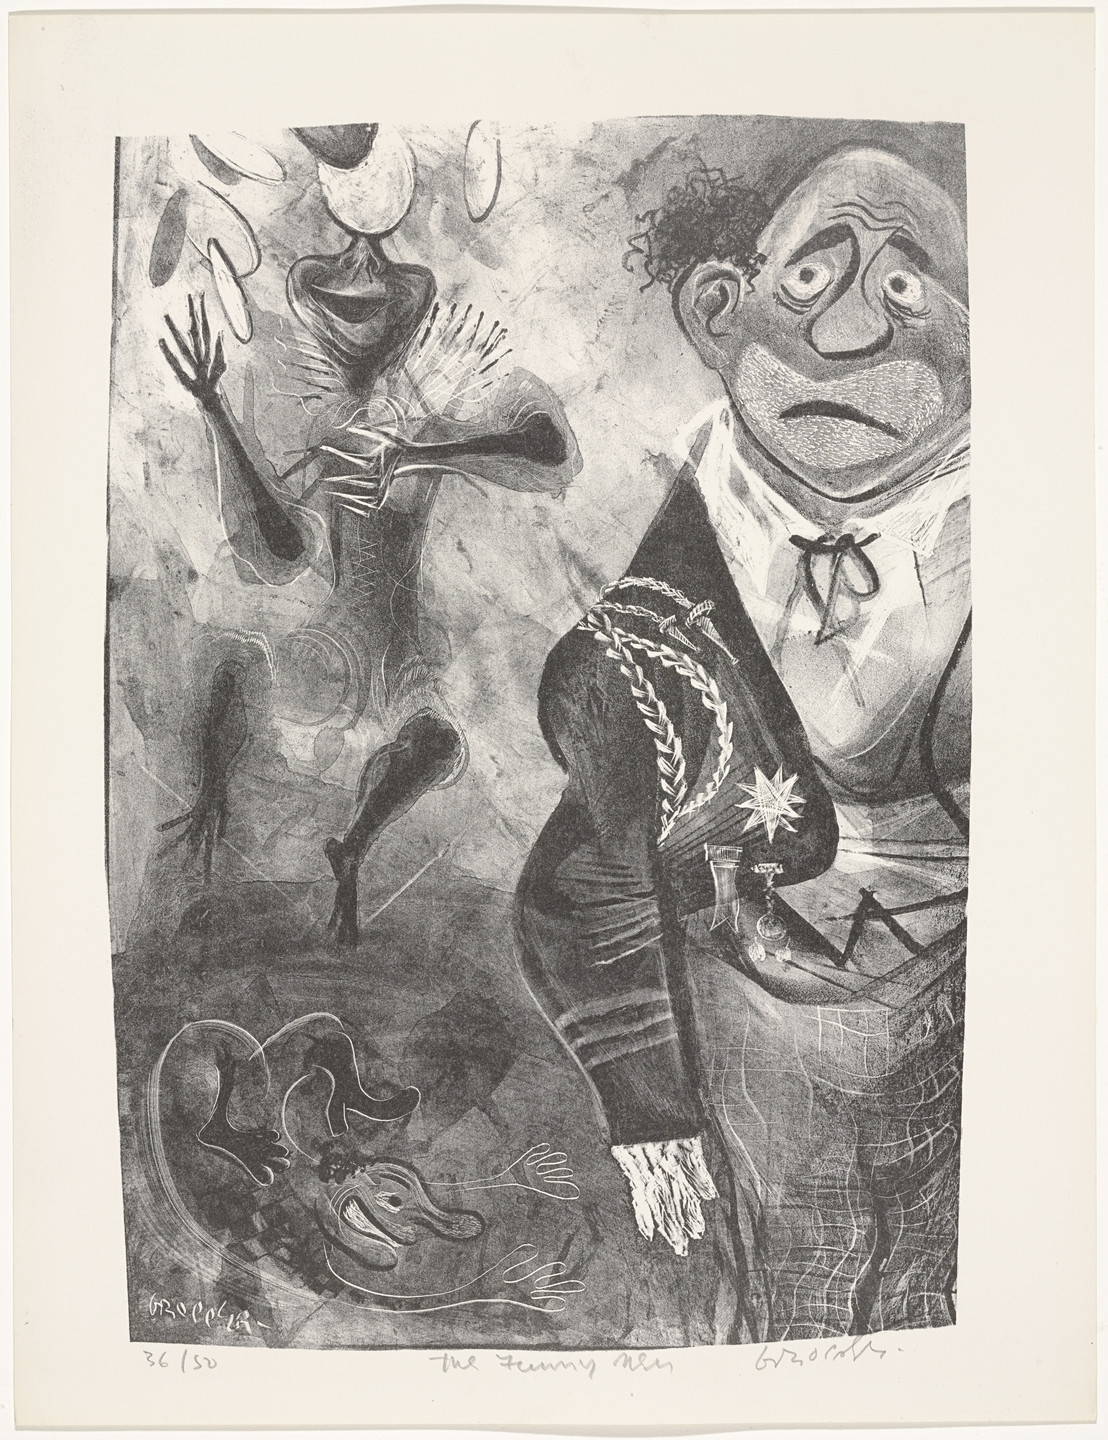 William Gropper. The Funny Men from Capriccios. 1953–57